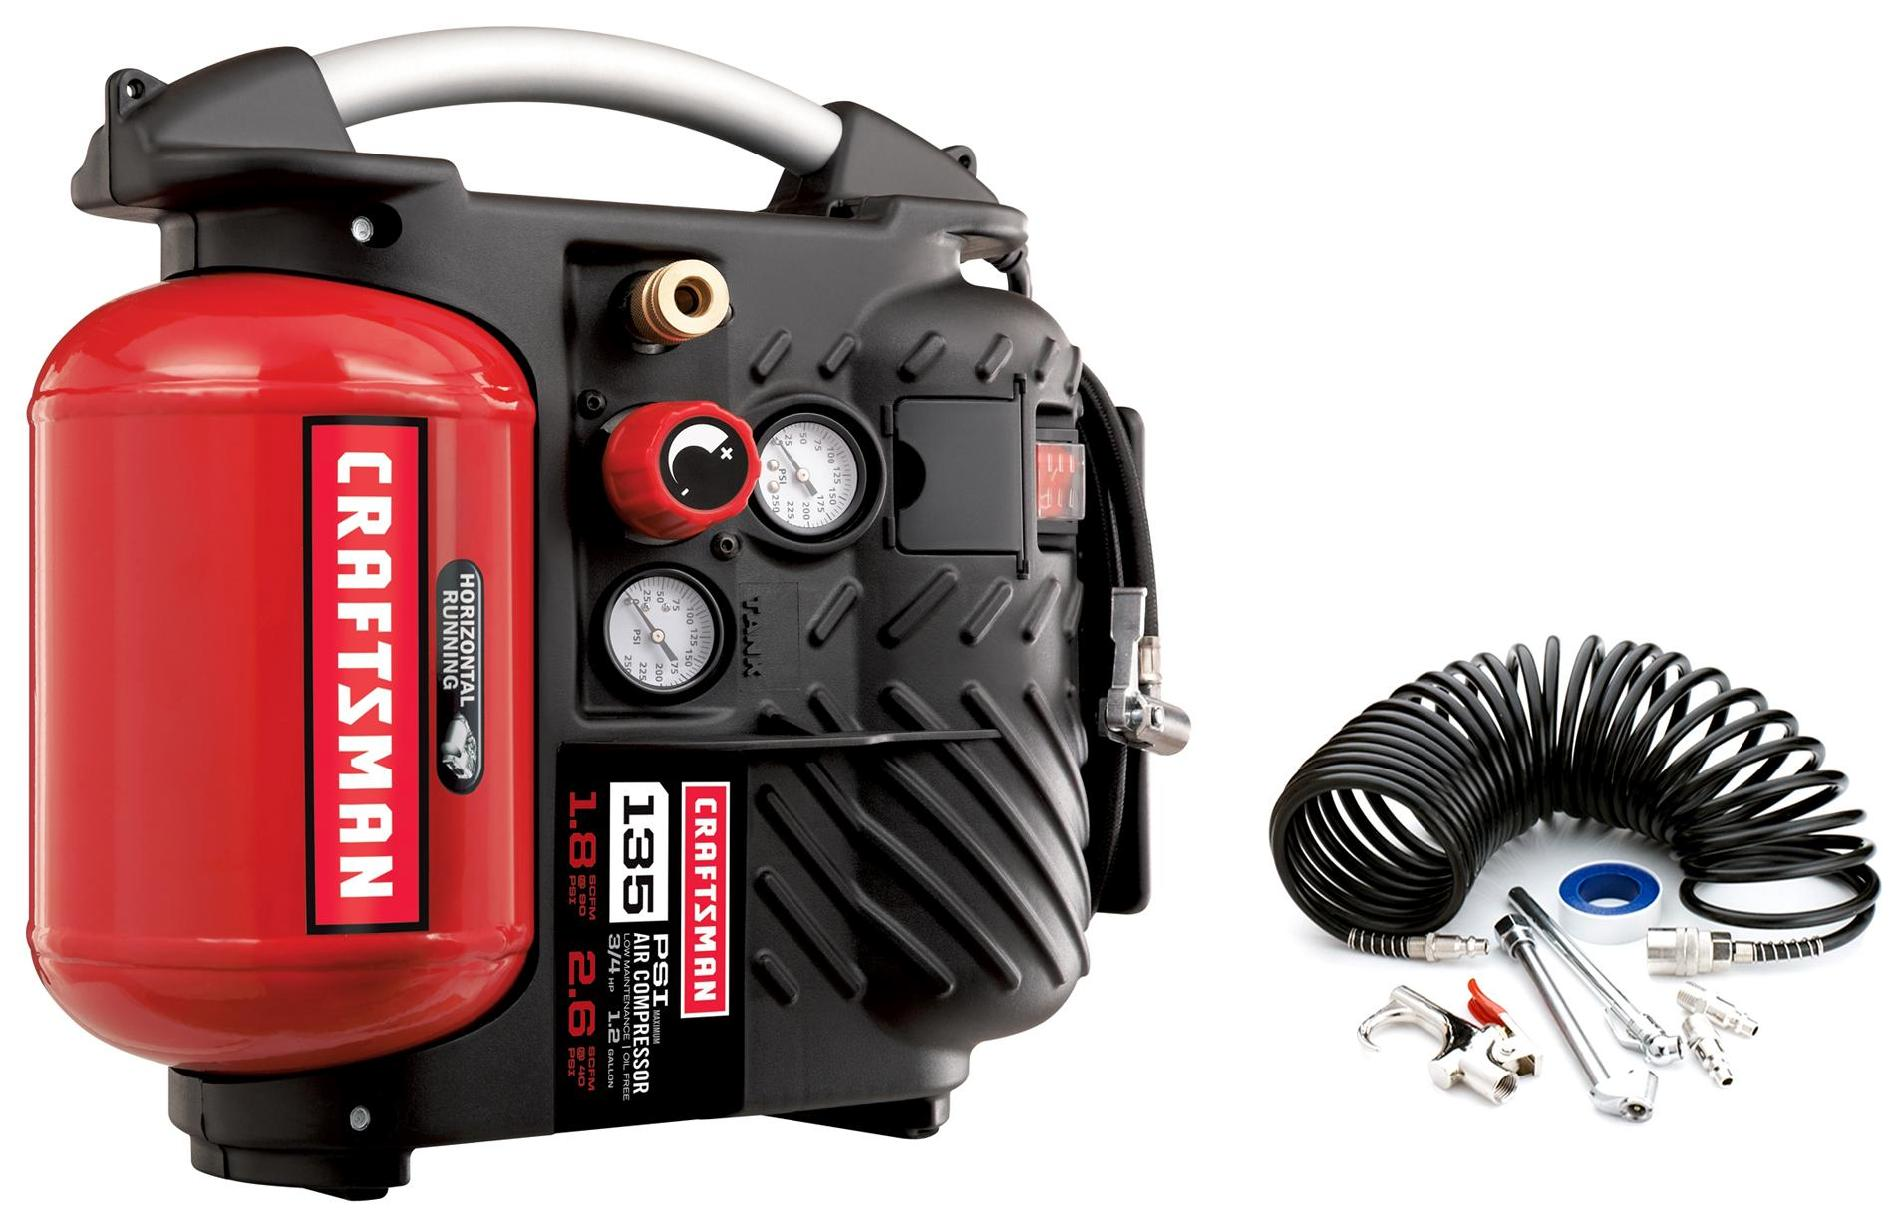 Craftsman 1.2 Gallon AirBoss™ Oil-Free Air Compressor and Hose Kit  135 PSI